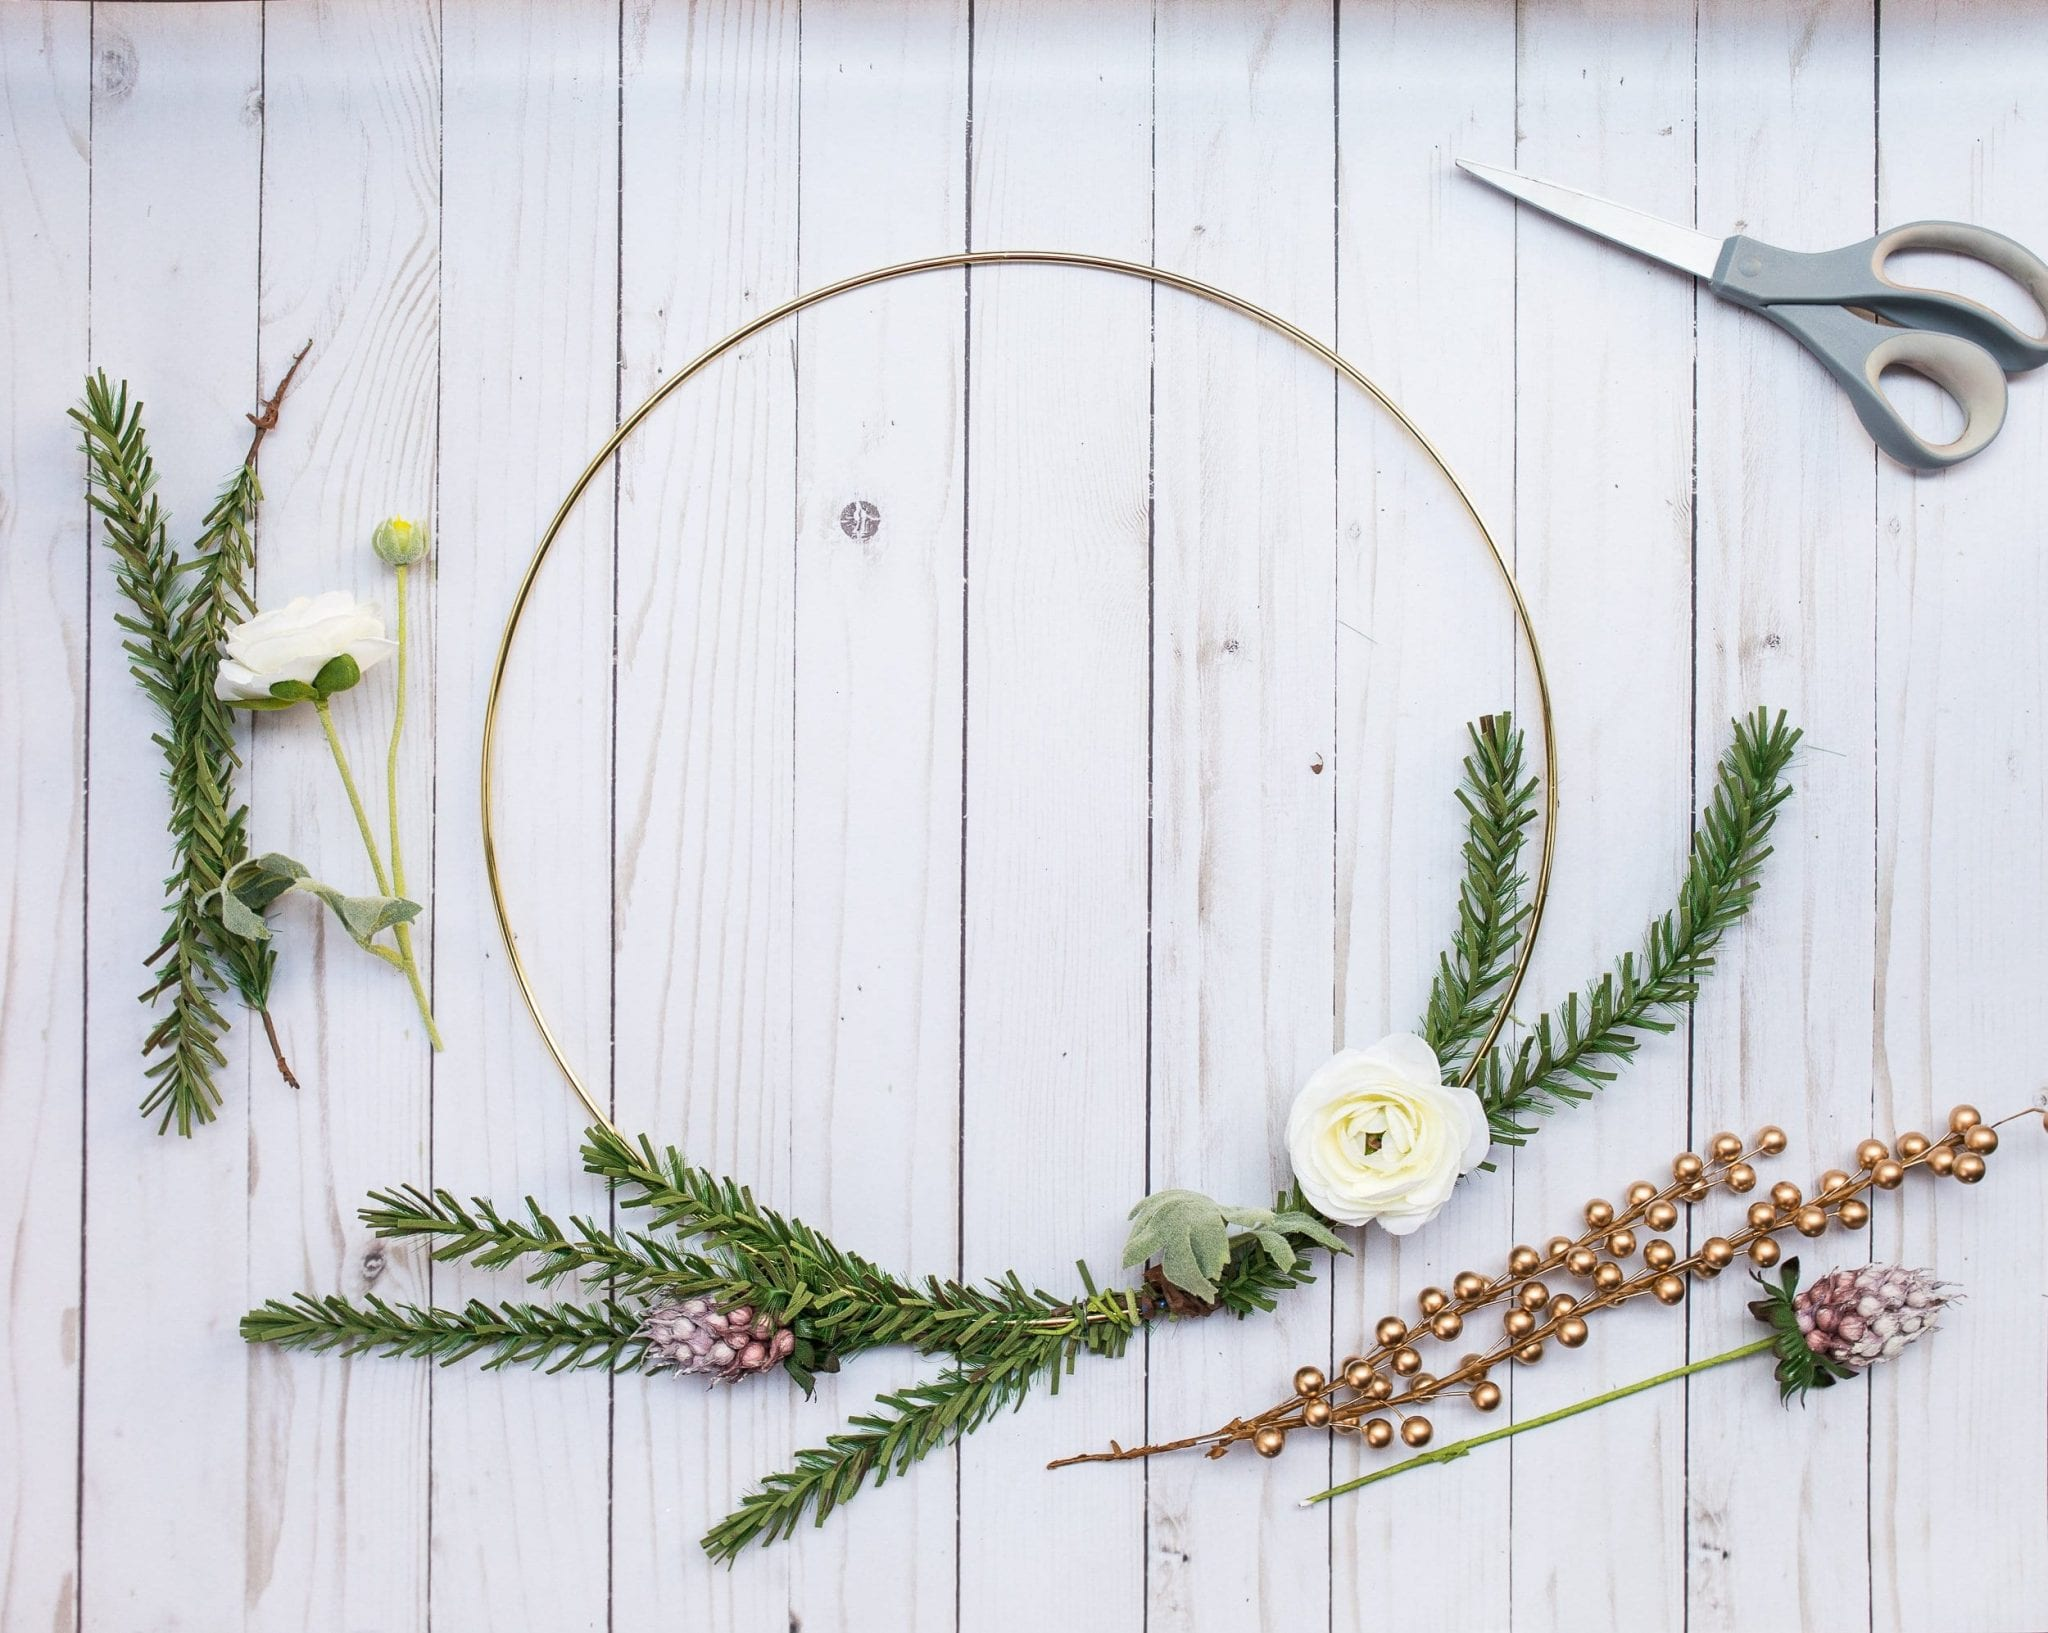 holiday wreaths diy christmas | christmas wreath gold hoop | how to make simple christmas wreath | christmas decor modern simple| holiday wreaths diy christmas simple| never skip brunch by cara newhart #decor #christmas #holiday